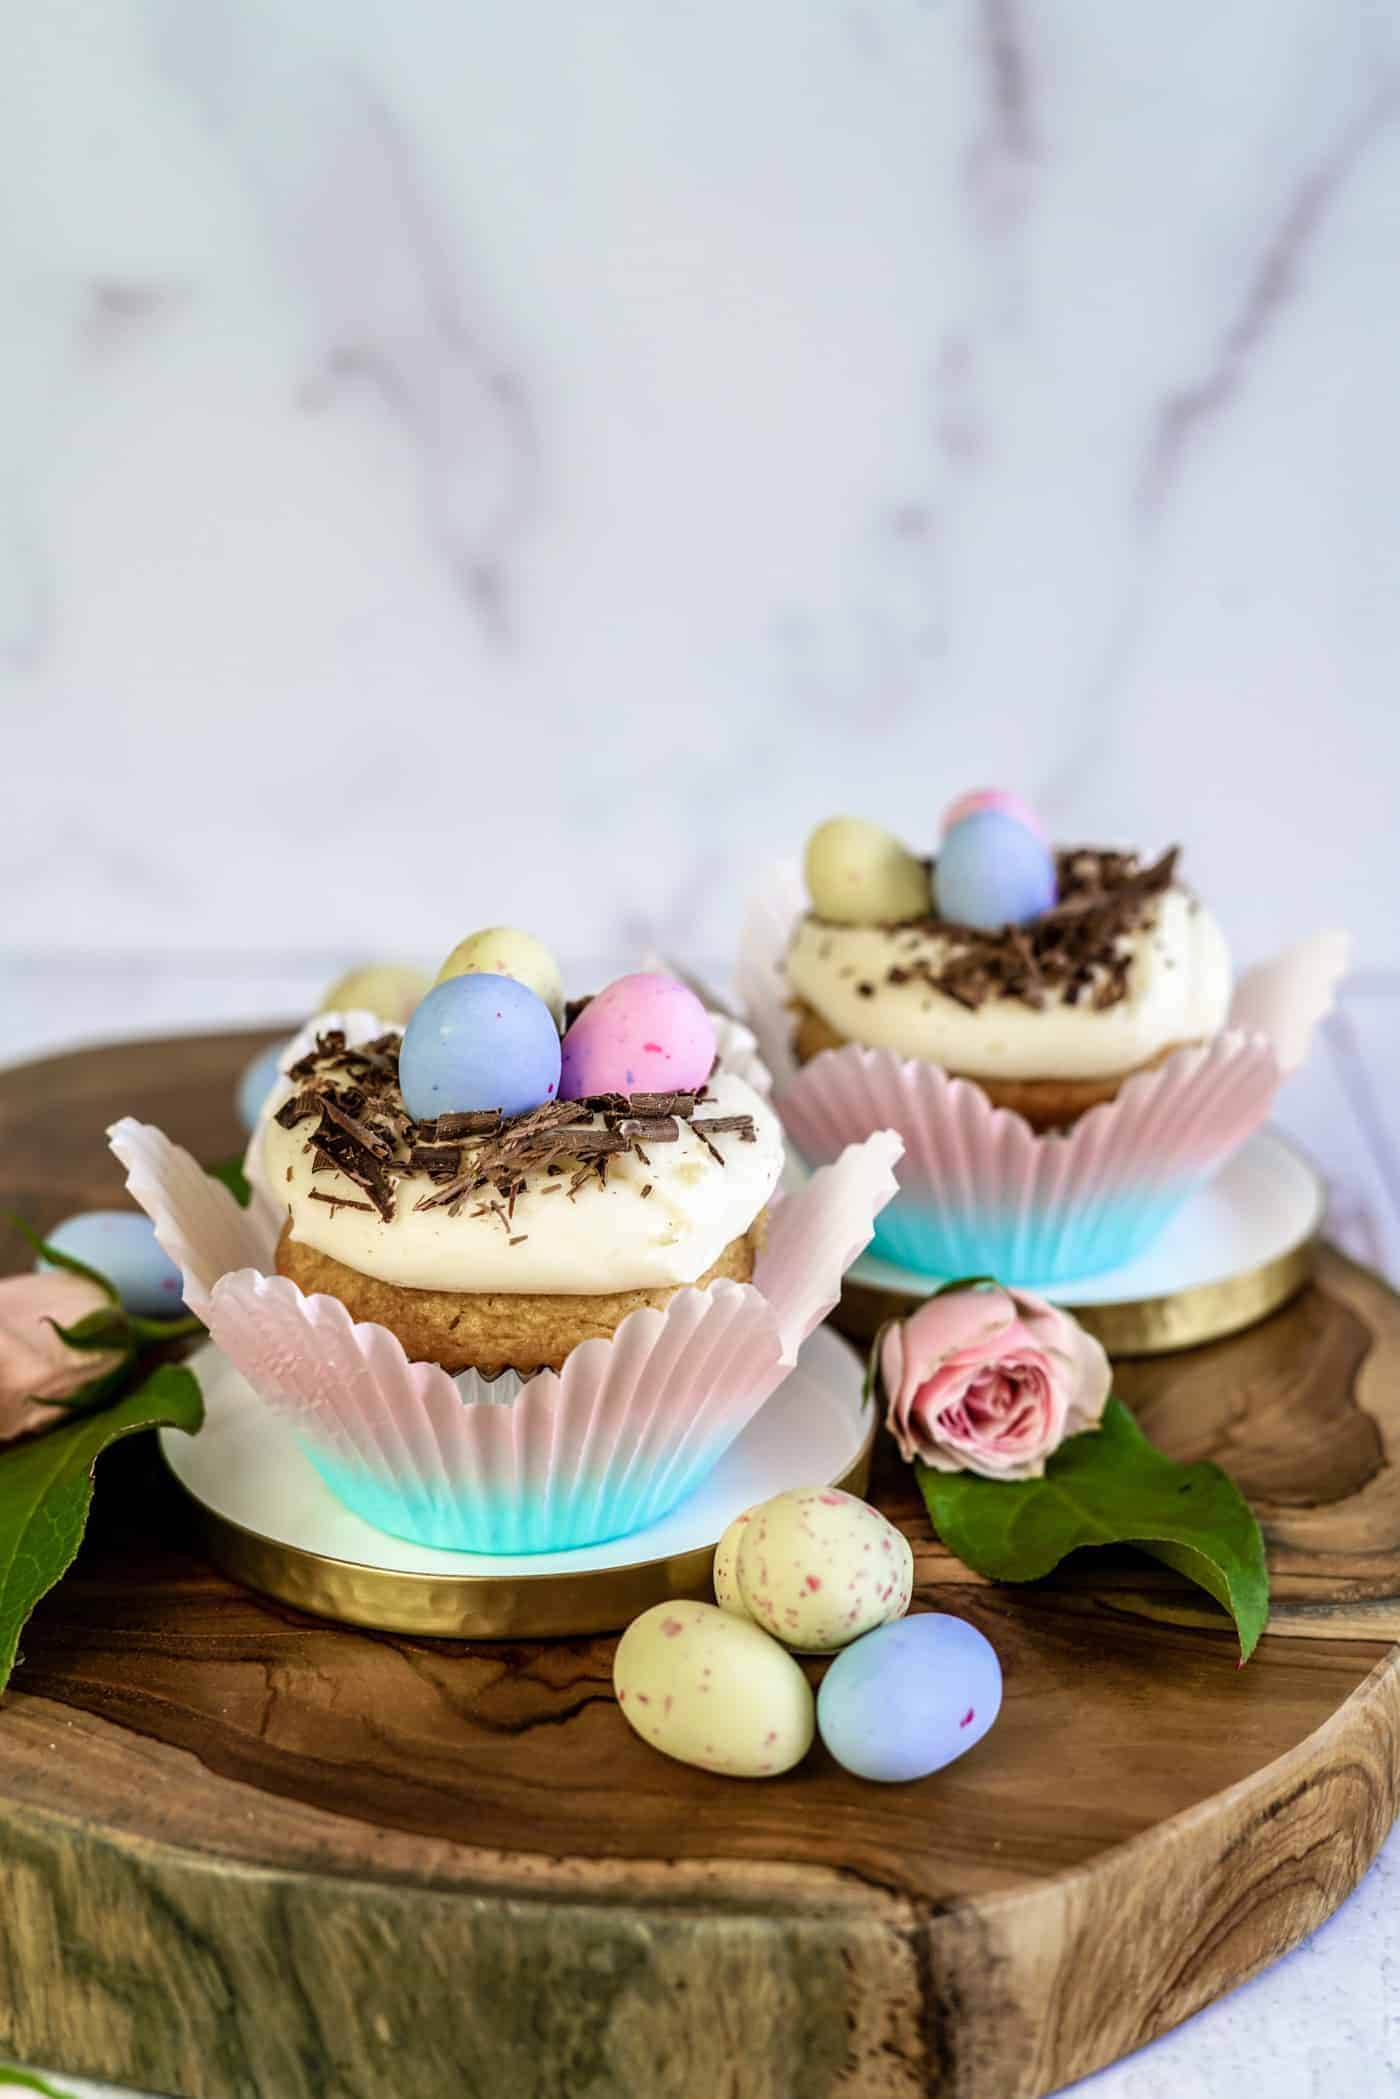 Two Easter Egg Cupcakes topped with chocolate and easter eggs